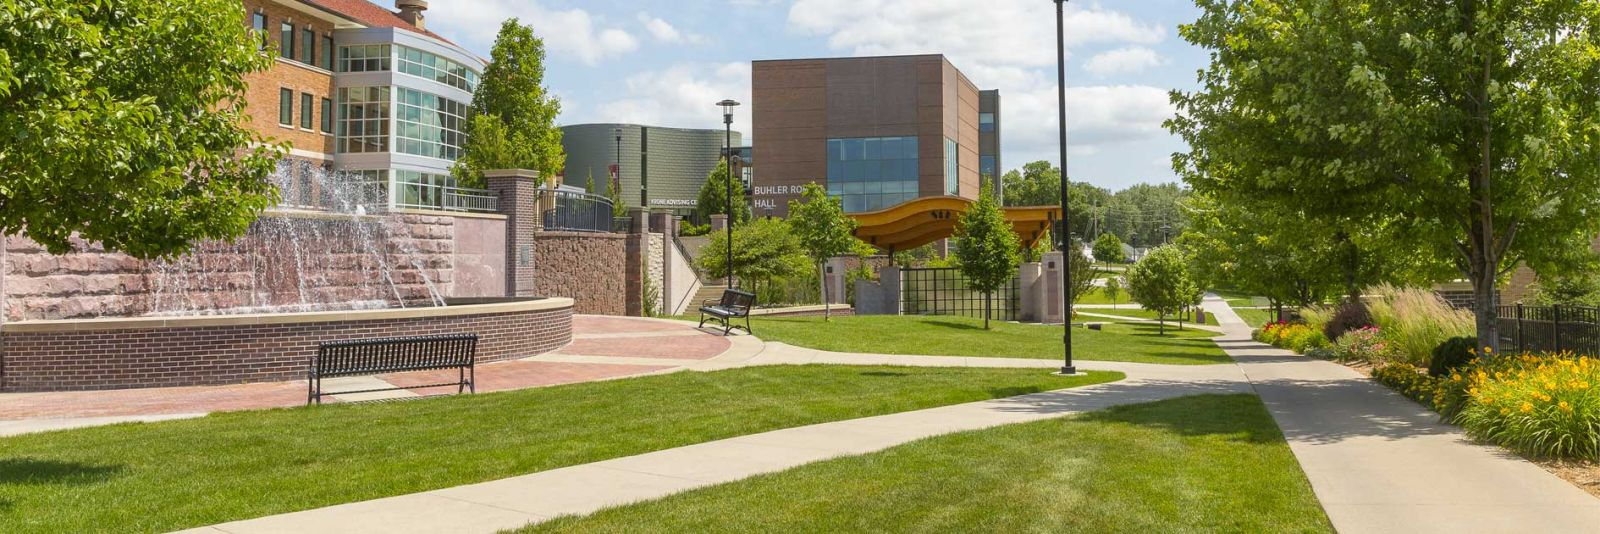 Morningside Campus